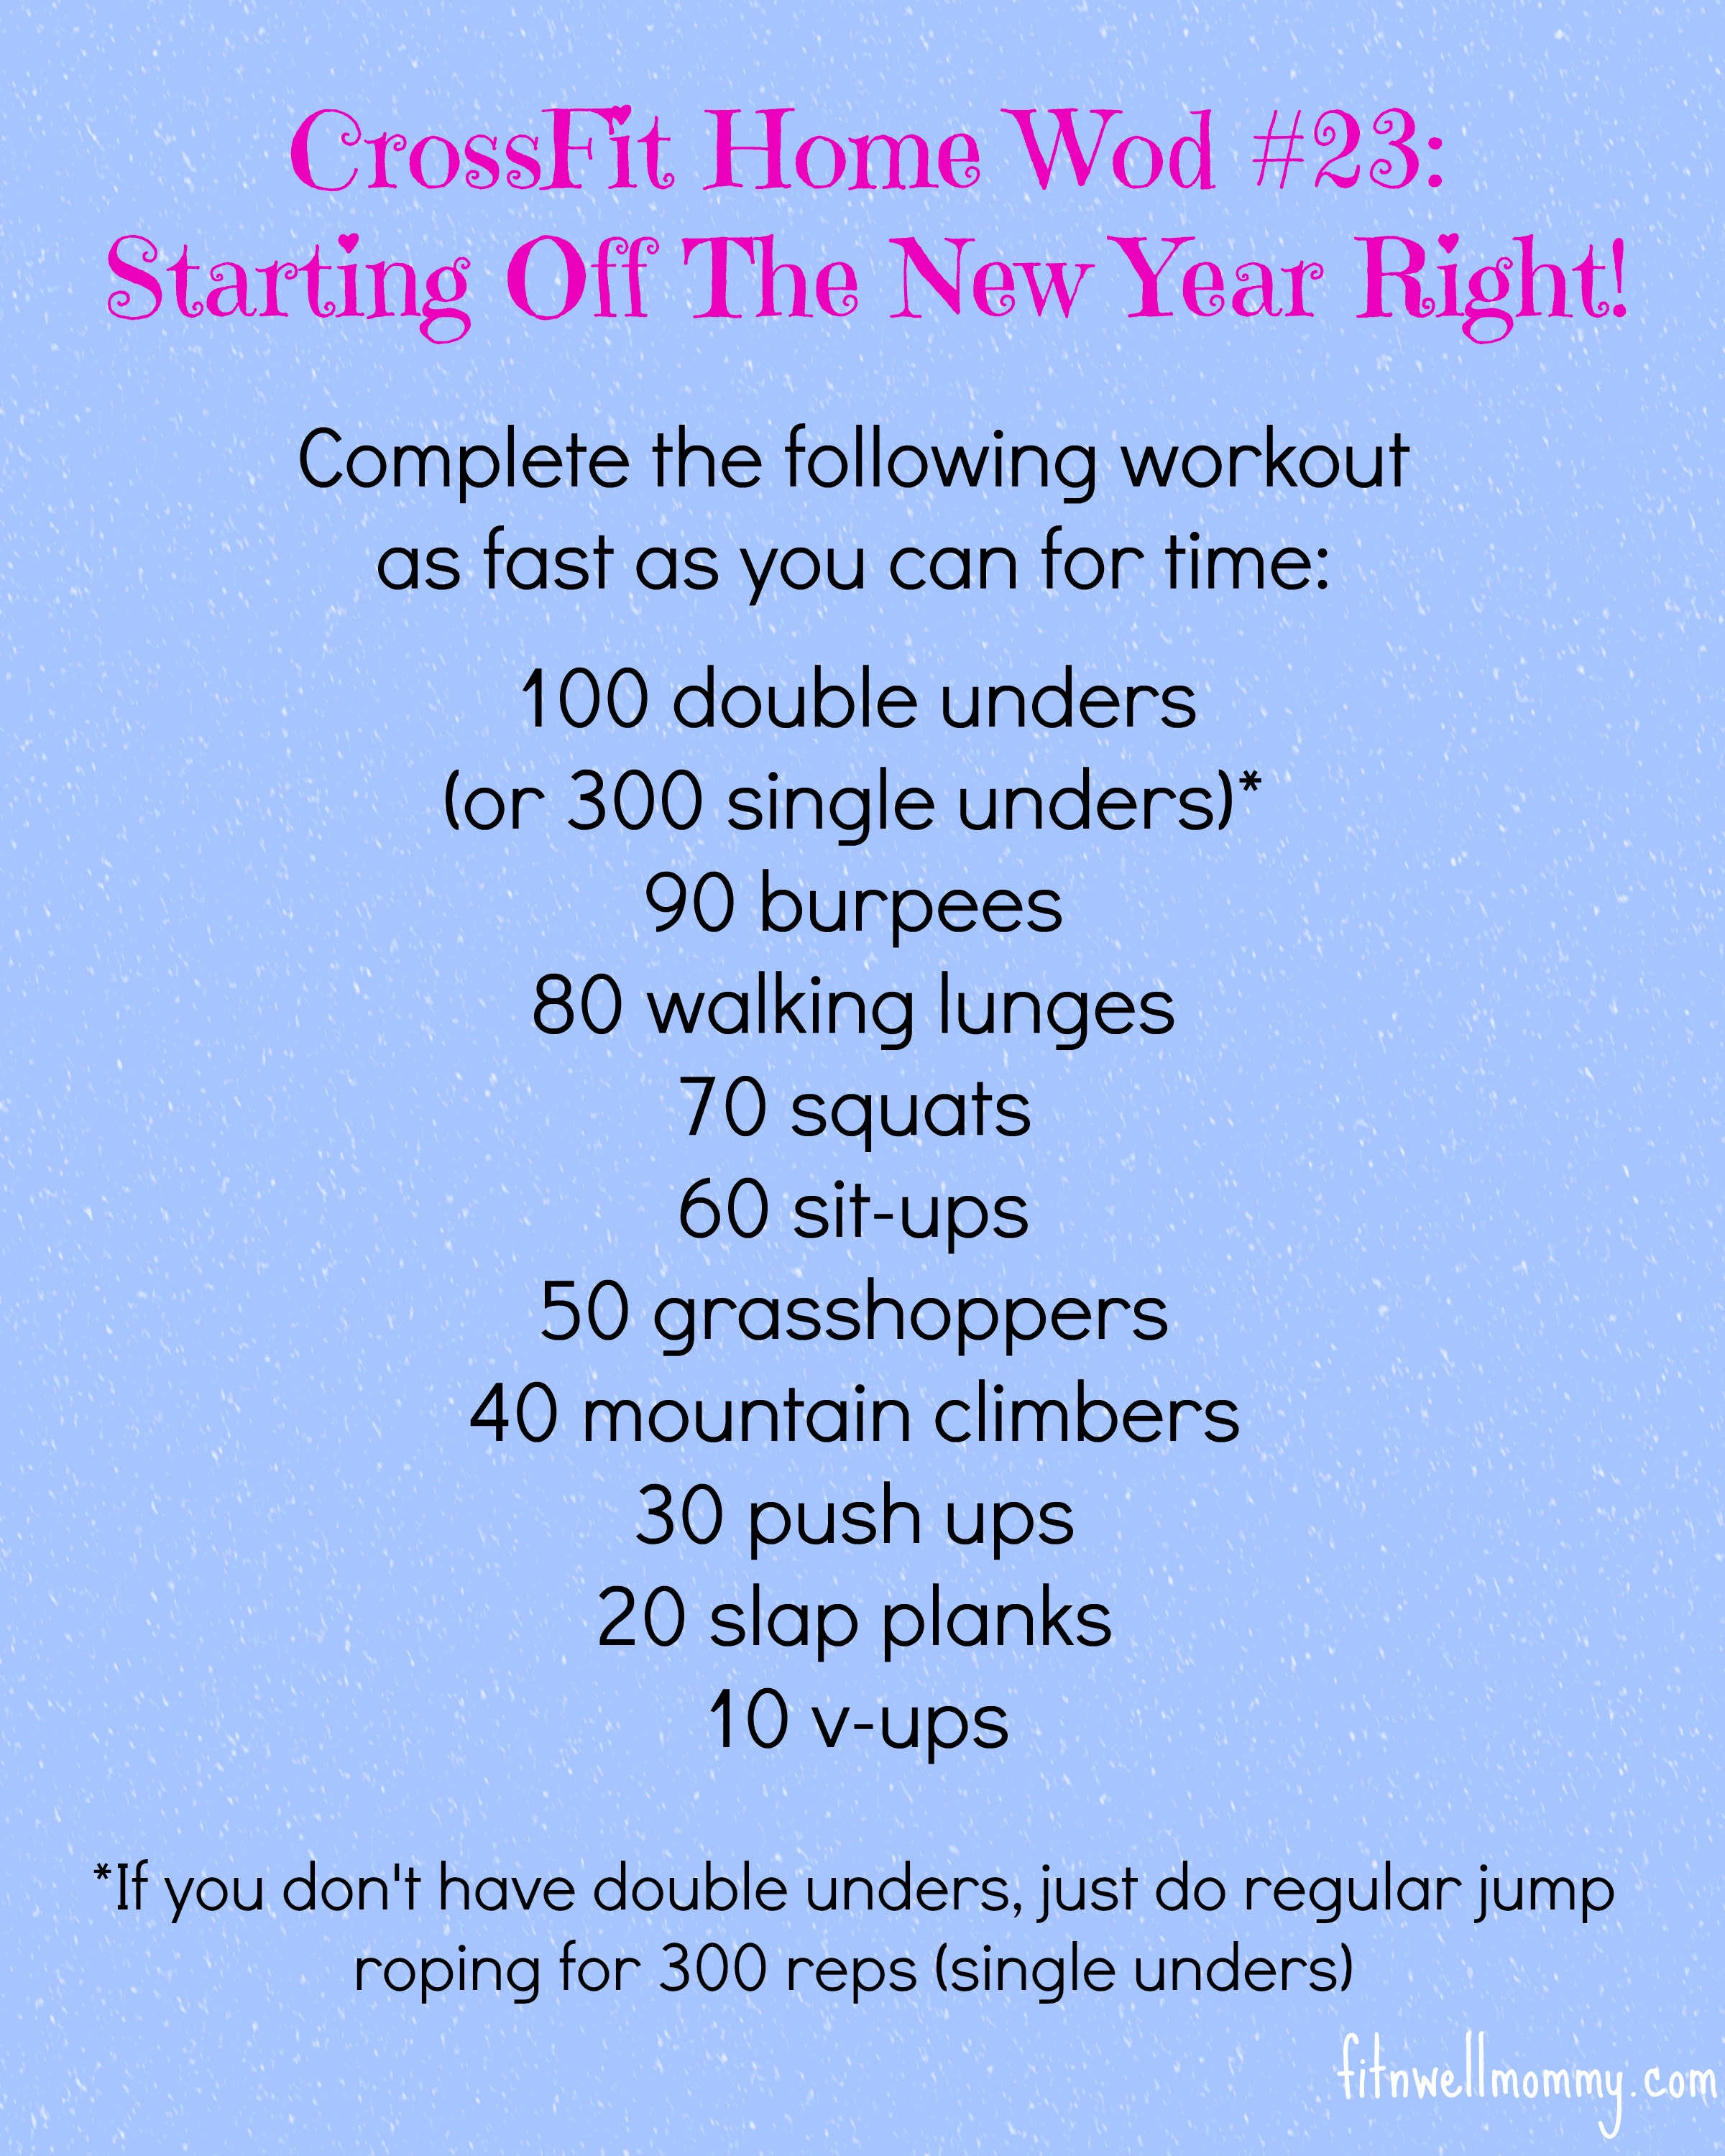 Results Crossfit Workout: CrossFit Home Wod #23: Starting Off The New Year Right